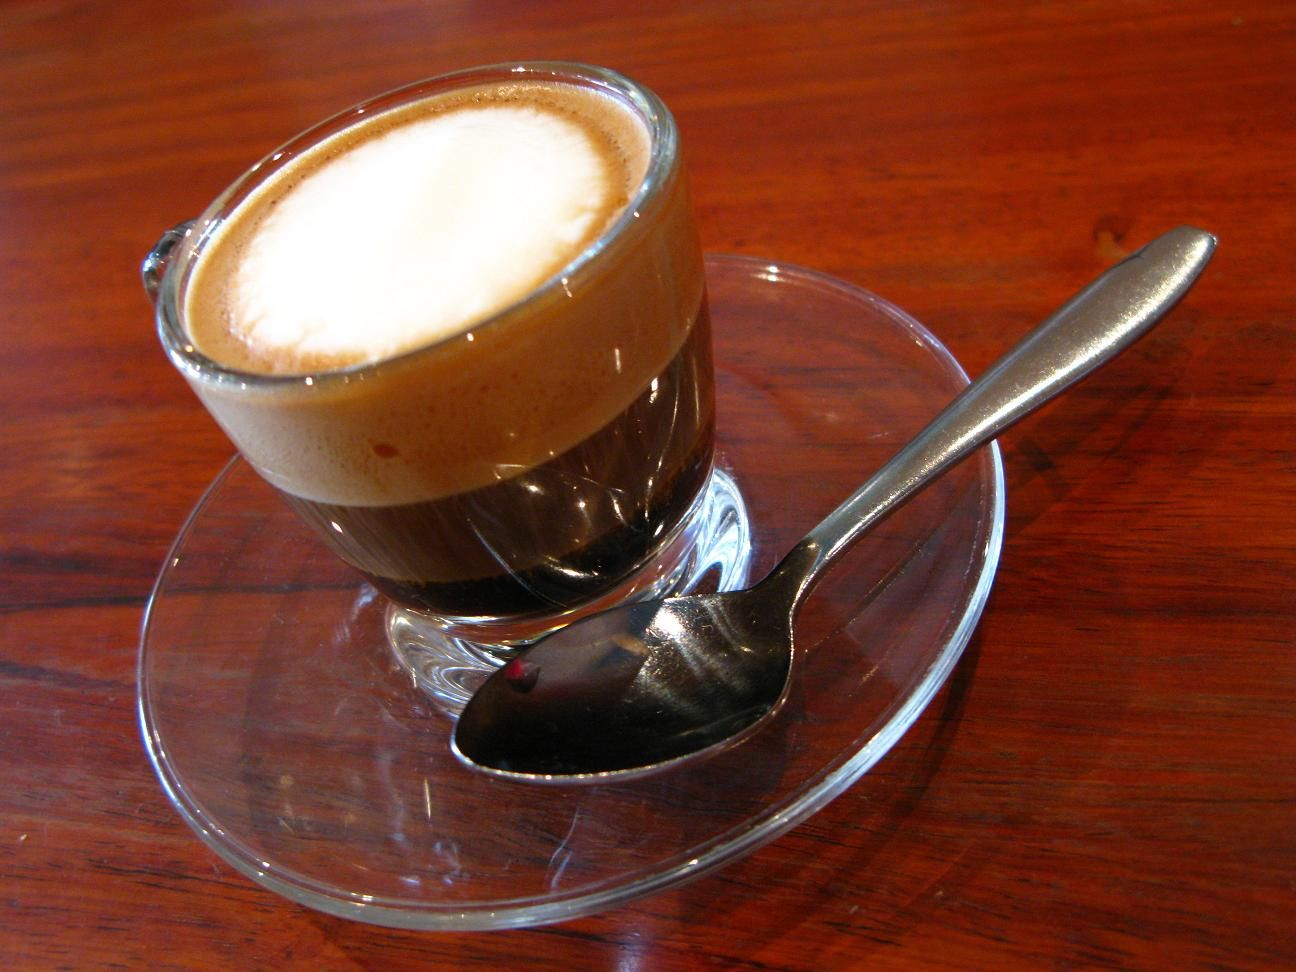 expresso pictures pic 7 espresso macchiato at joma cafe and bakery 11 java lover 39 s dream. Black Bedroom Furniture Sets. Home Design Ideas